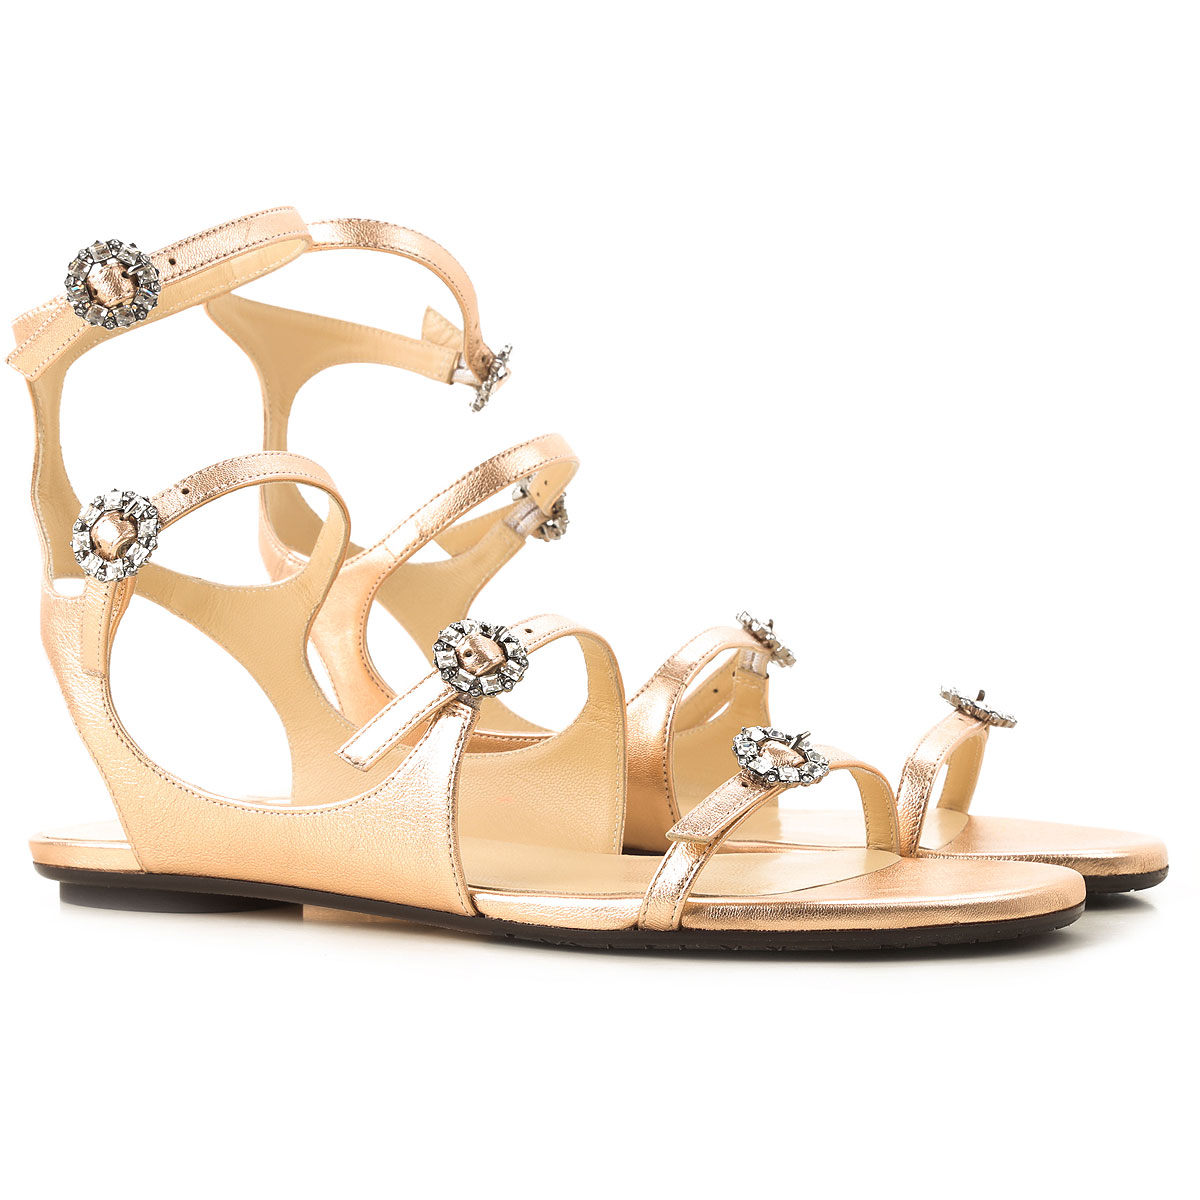 Jimmy Choo Sandals for Women in Outlet Tea Rose USA - GOOFASH